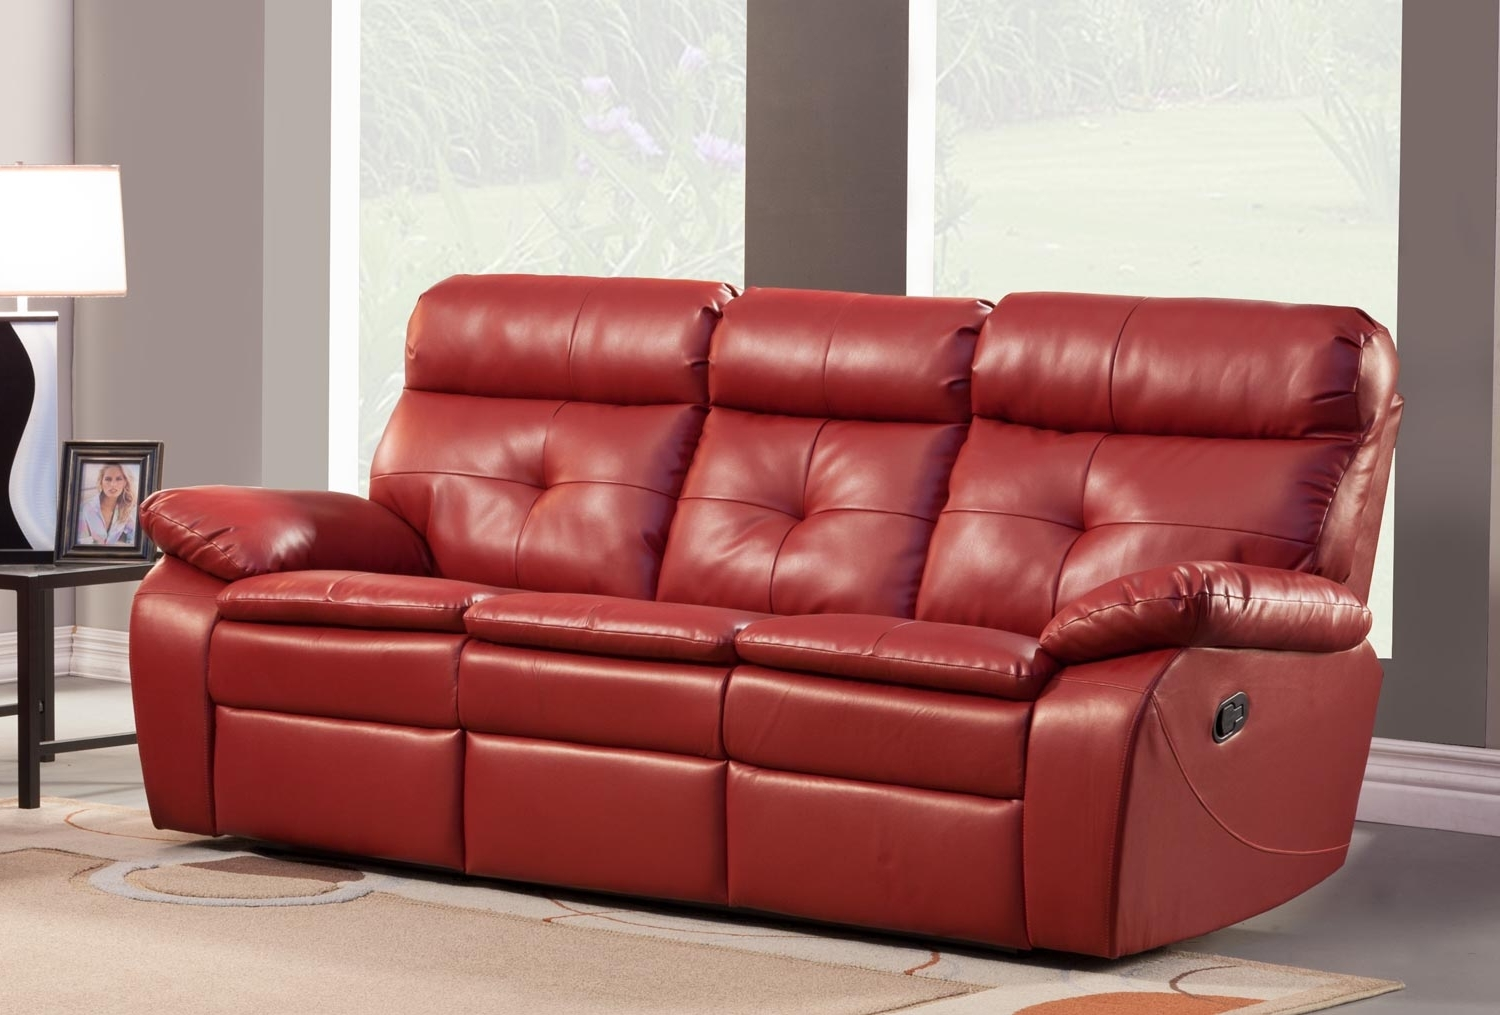 Famous Red Leather Recliner Sofa – Home And Textiles With Red Leather Reclining Sofas And Loveseats (View 3 of 15)